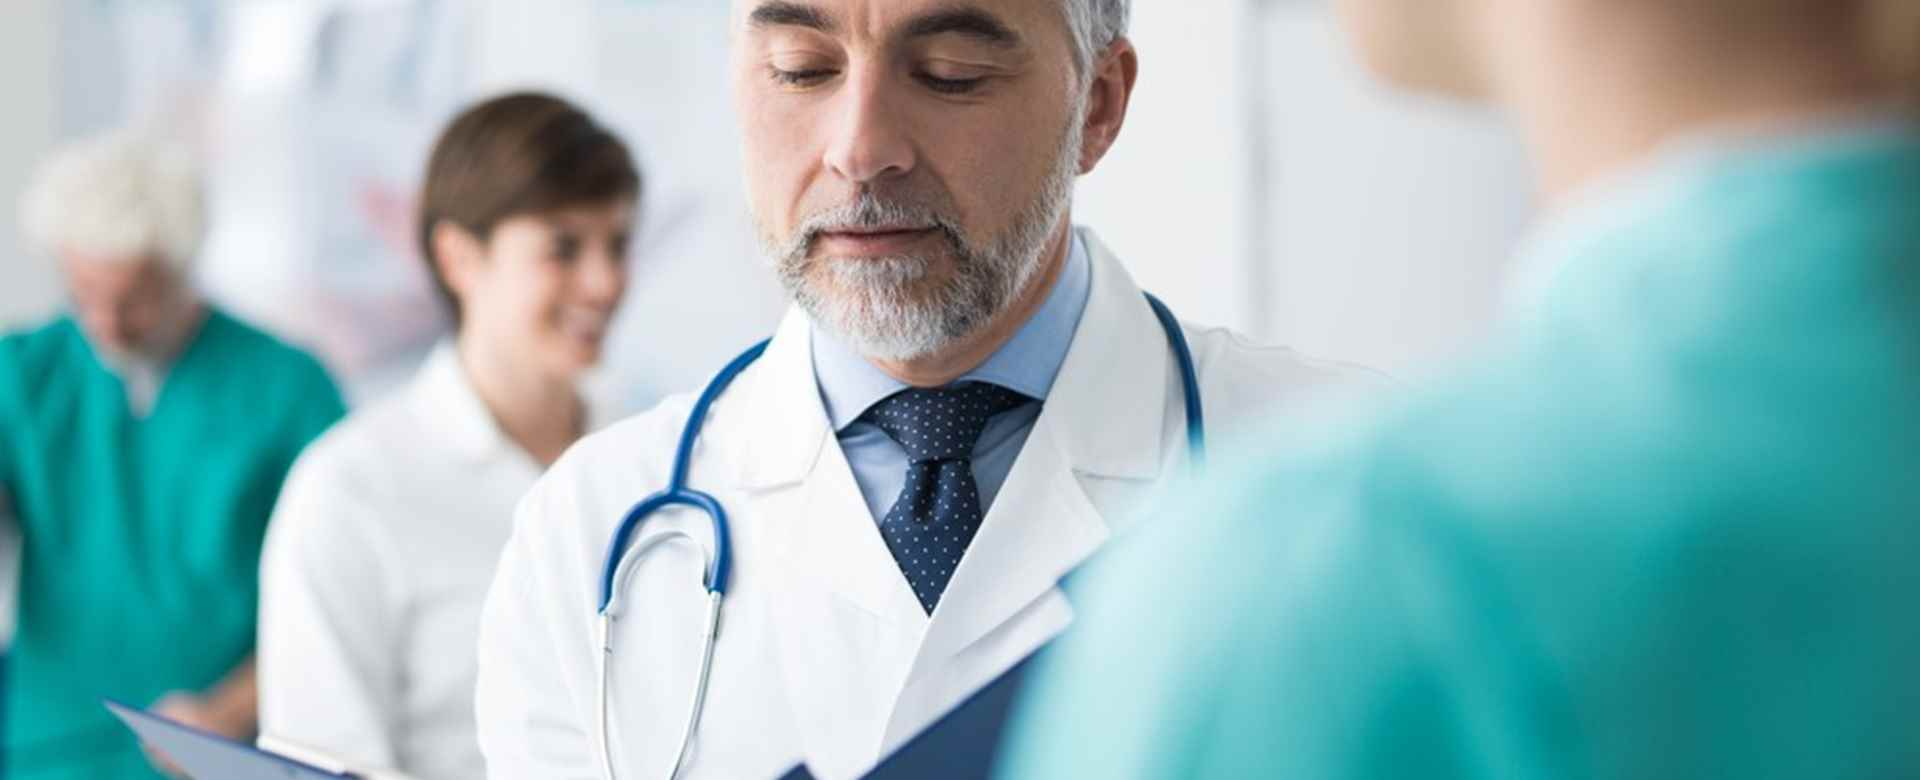 Innovative Ways Physicians Employ Their Training and Expertise Beyond the Clinic